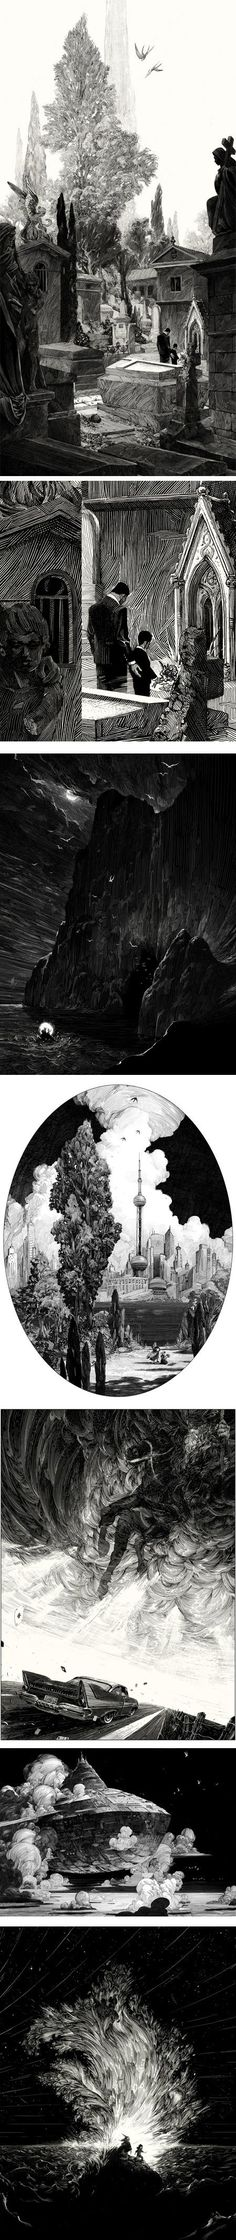 Nicolas Delort, a freelance illustrator based in Paris, creates wonderfully textural pen & ink (on scratchboard) illustrations: